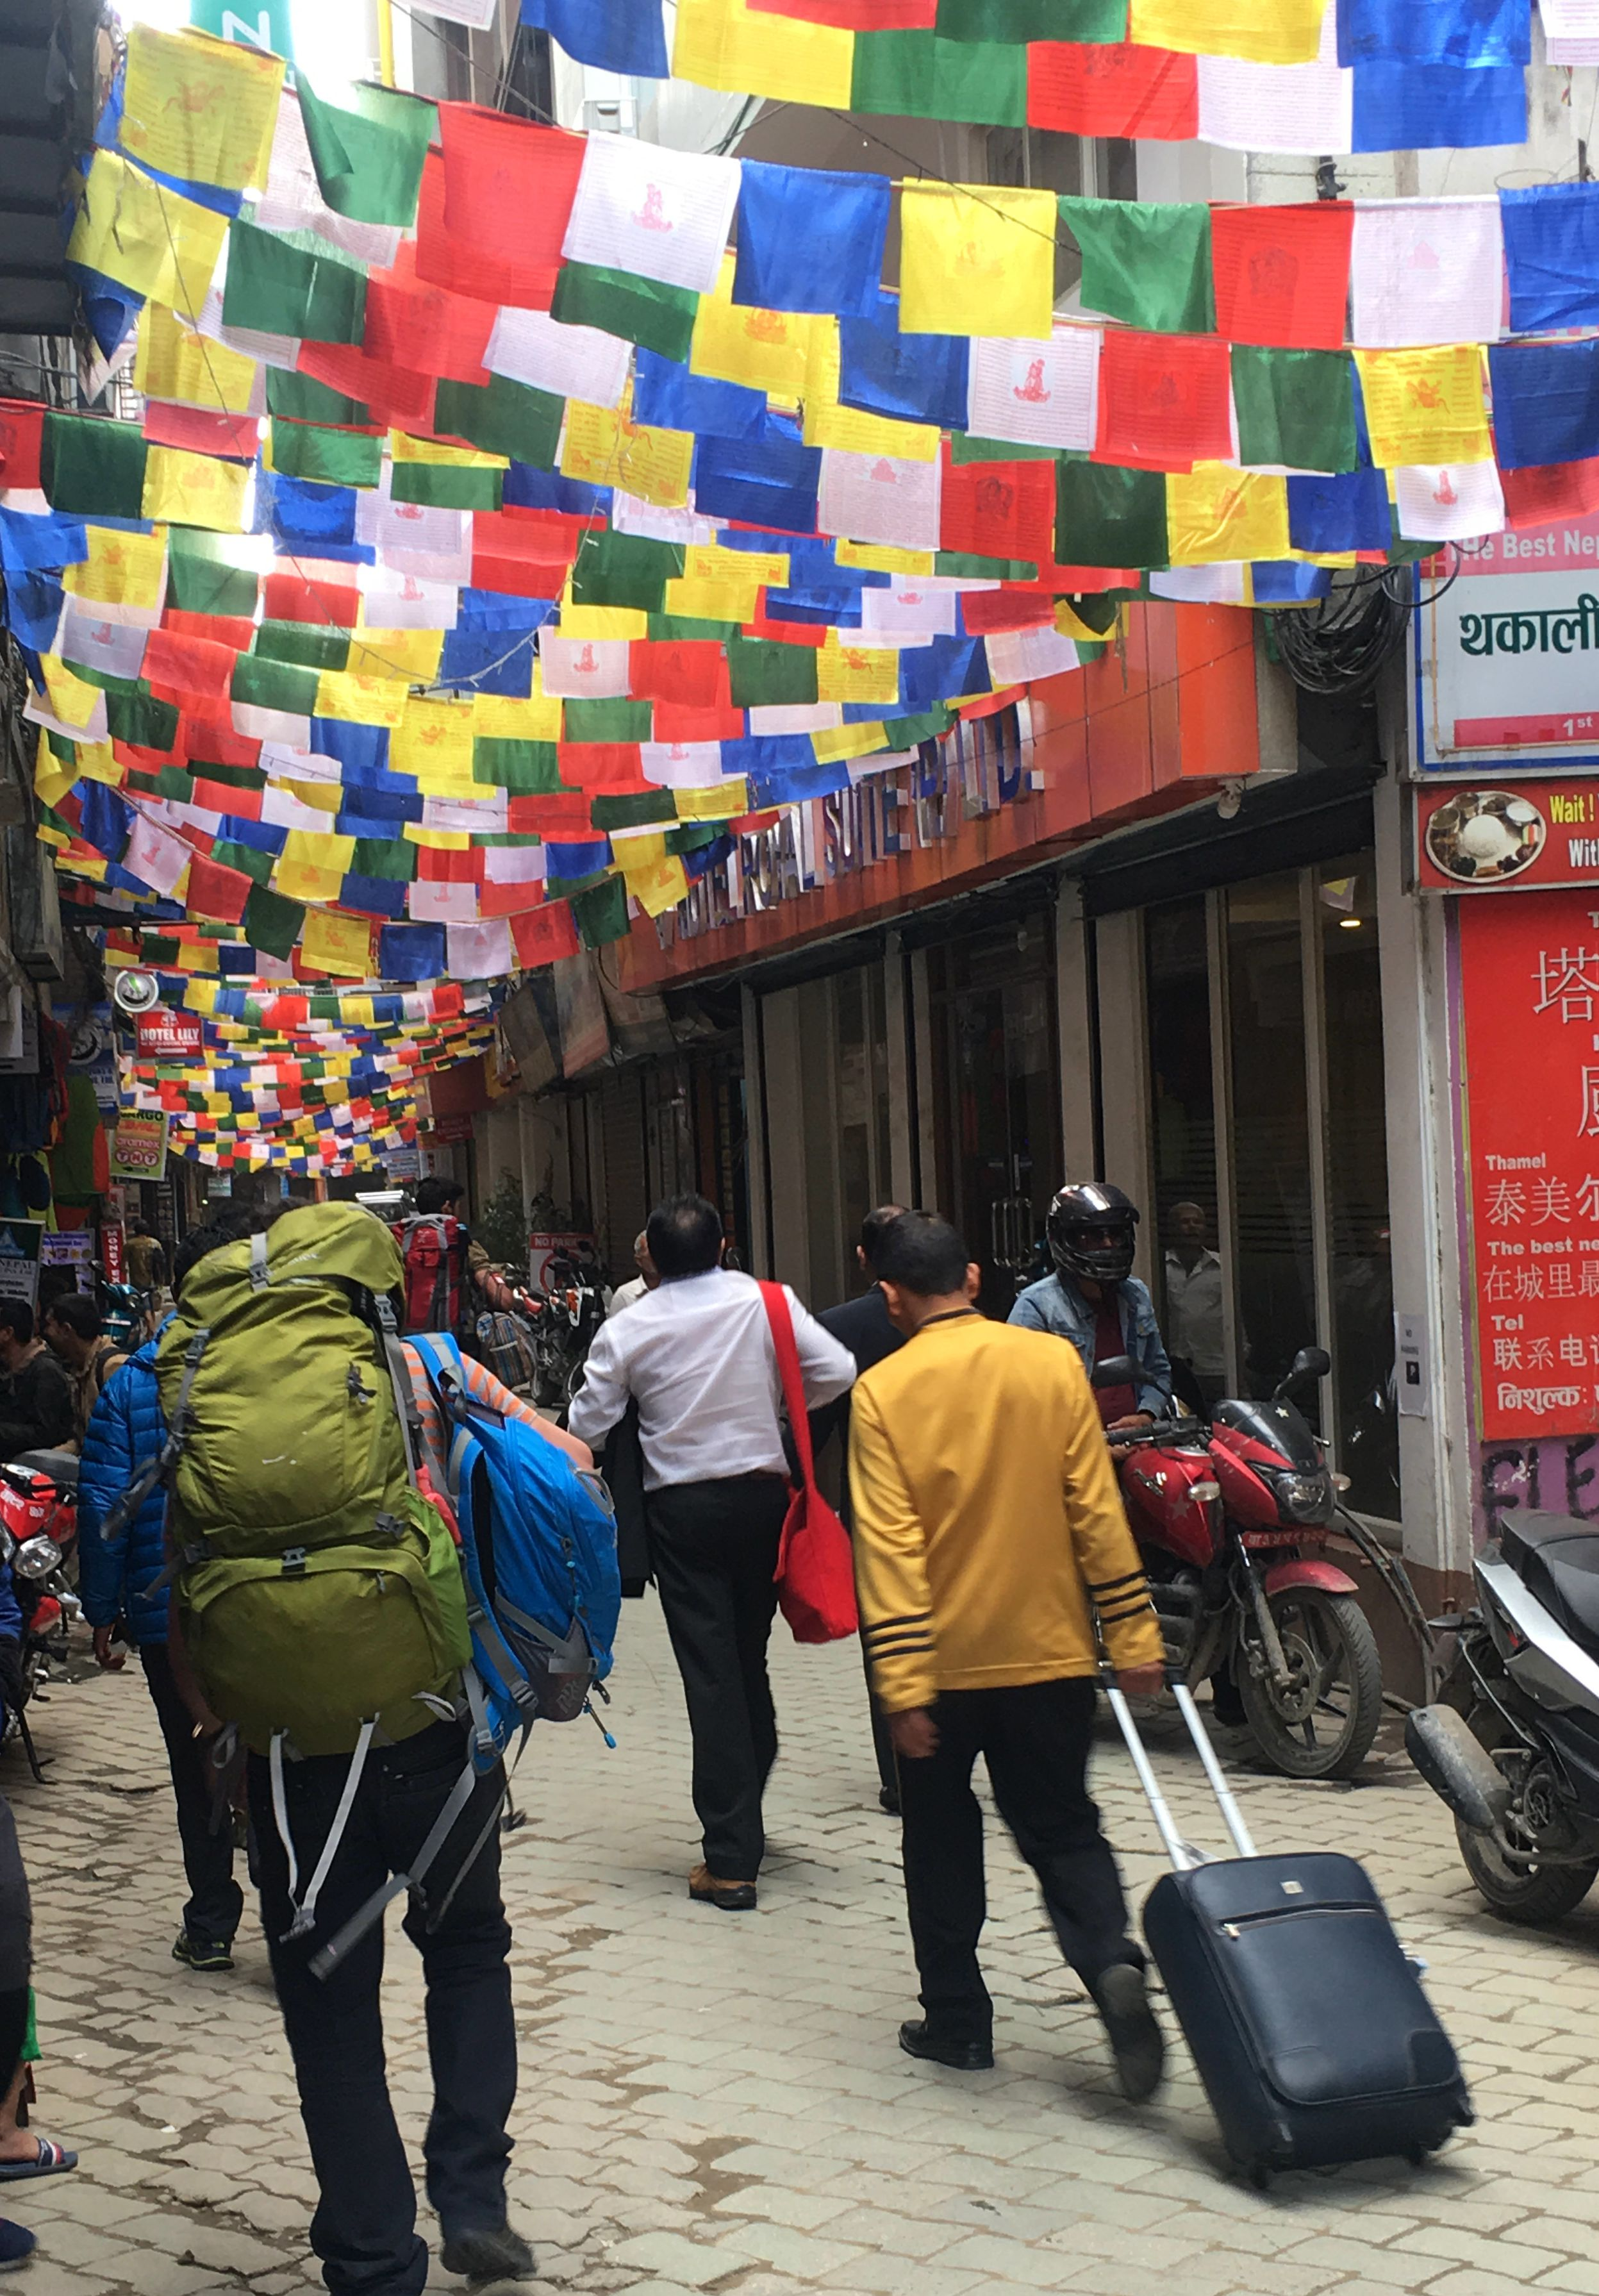 8 Things to do around Thamel